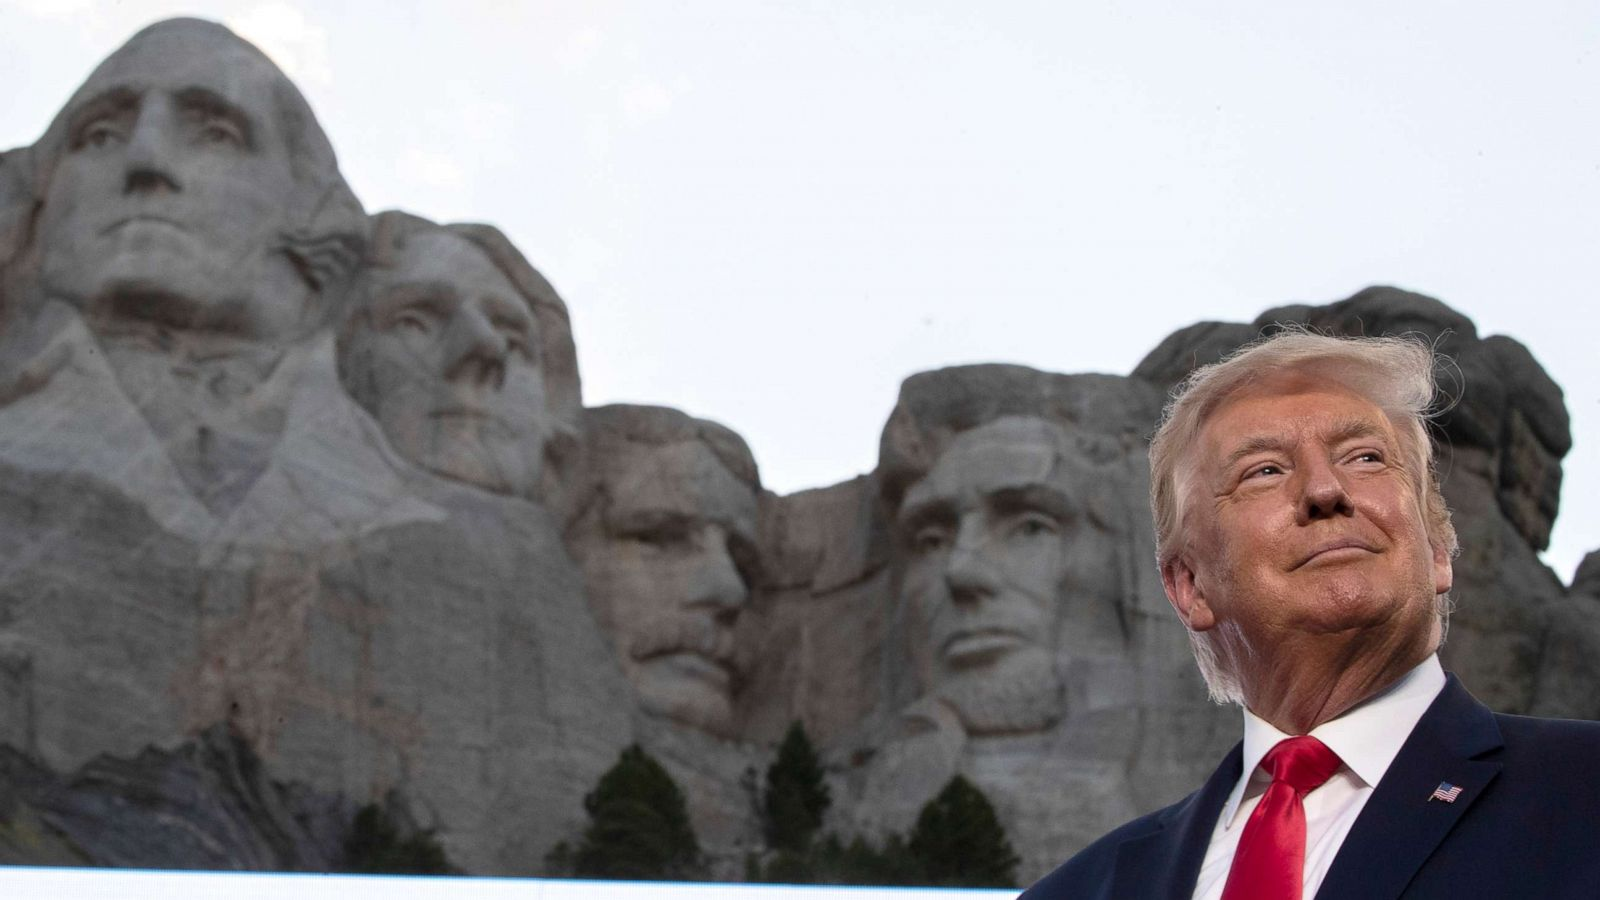 Trump denies WH asked about adding him to Mount Rushmore, then ...